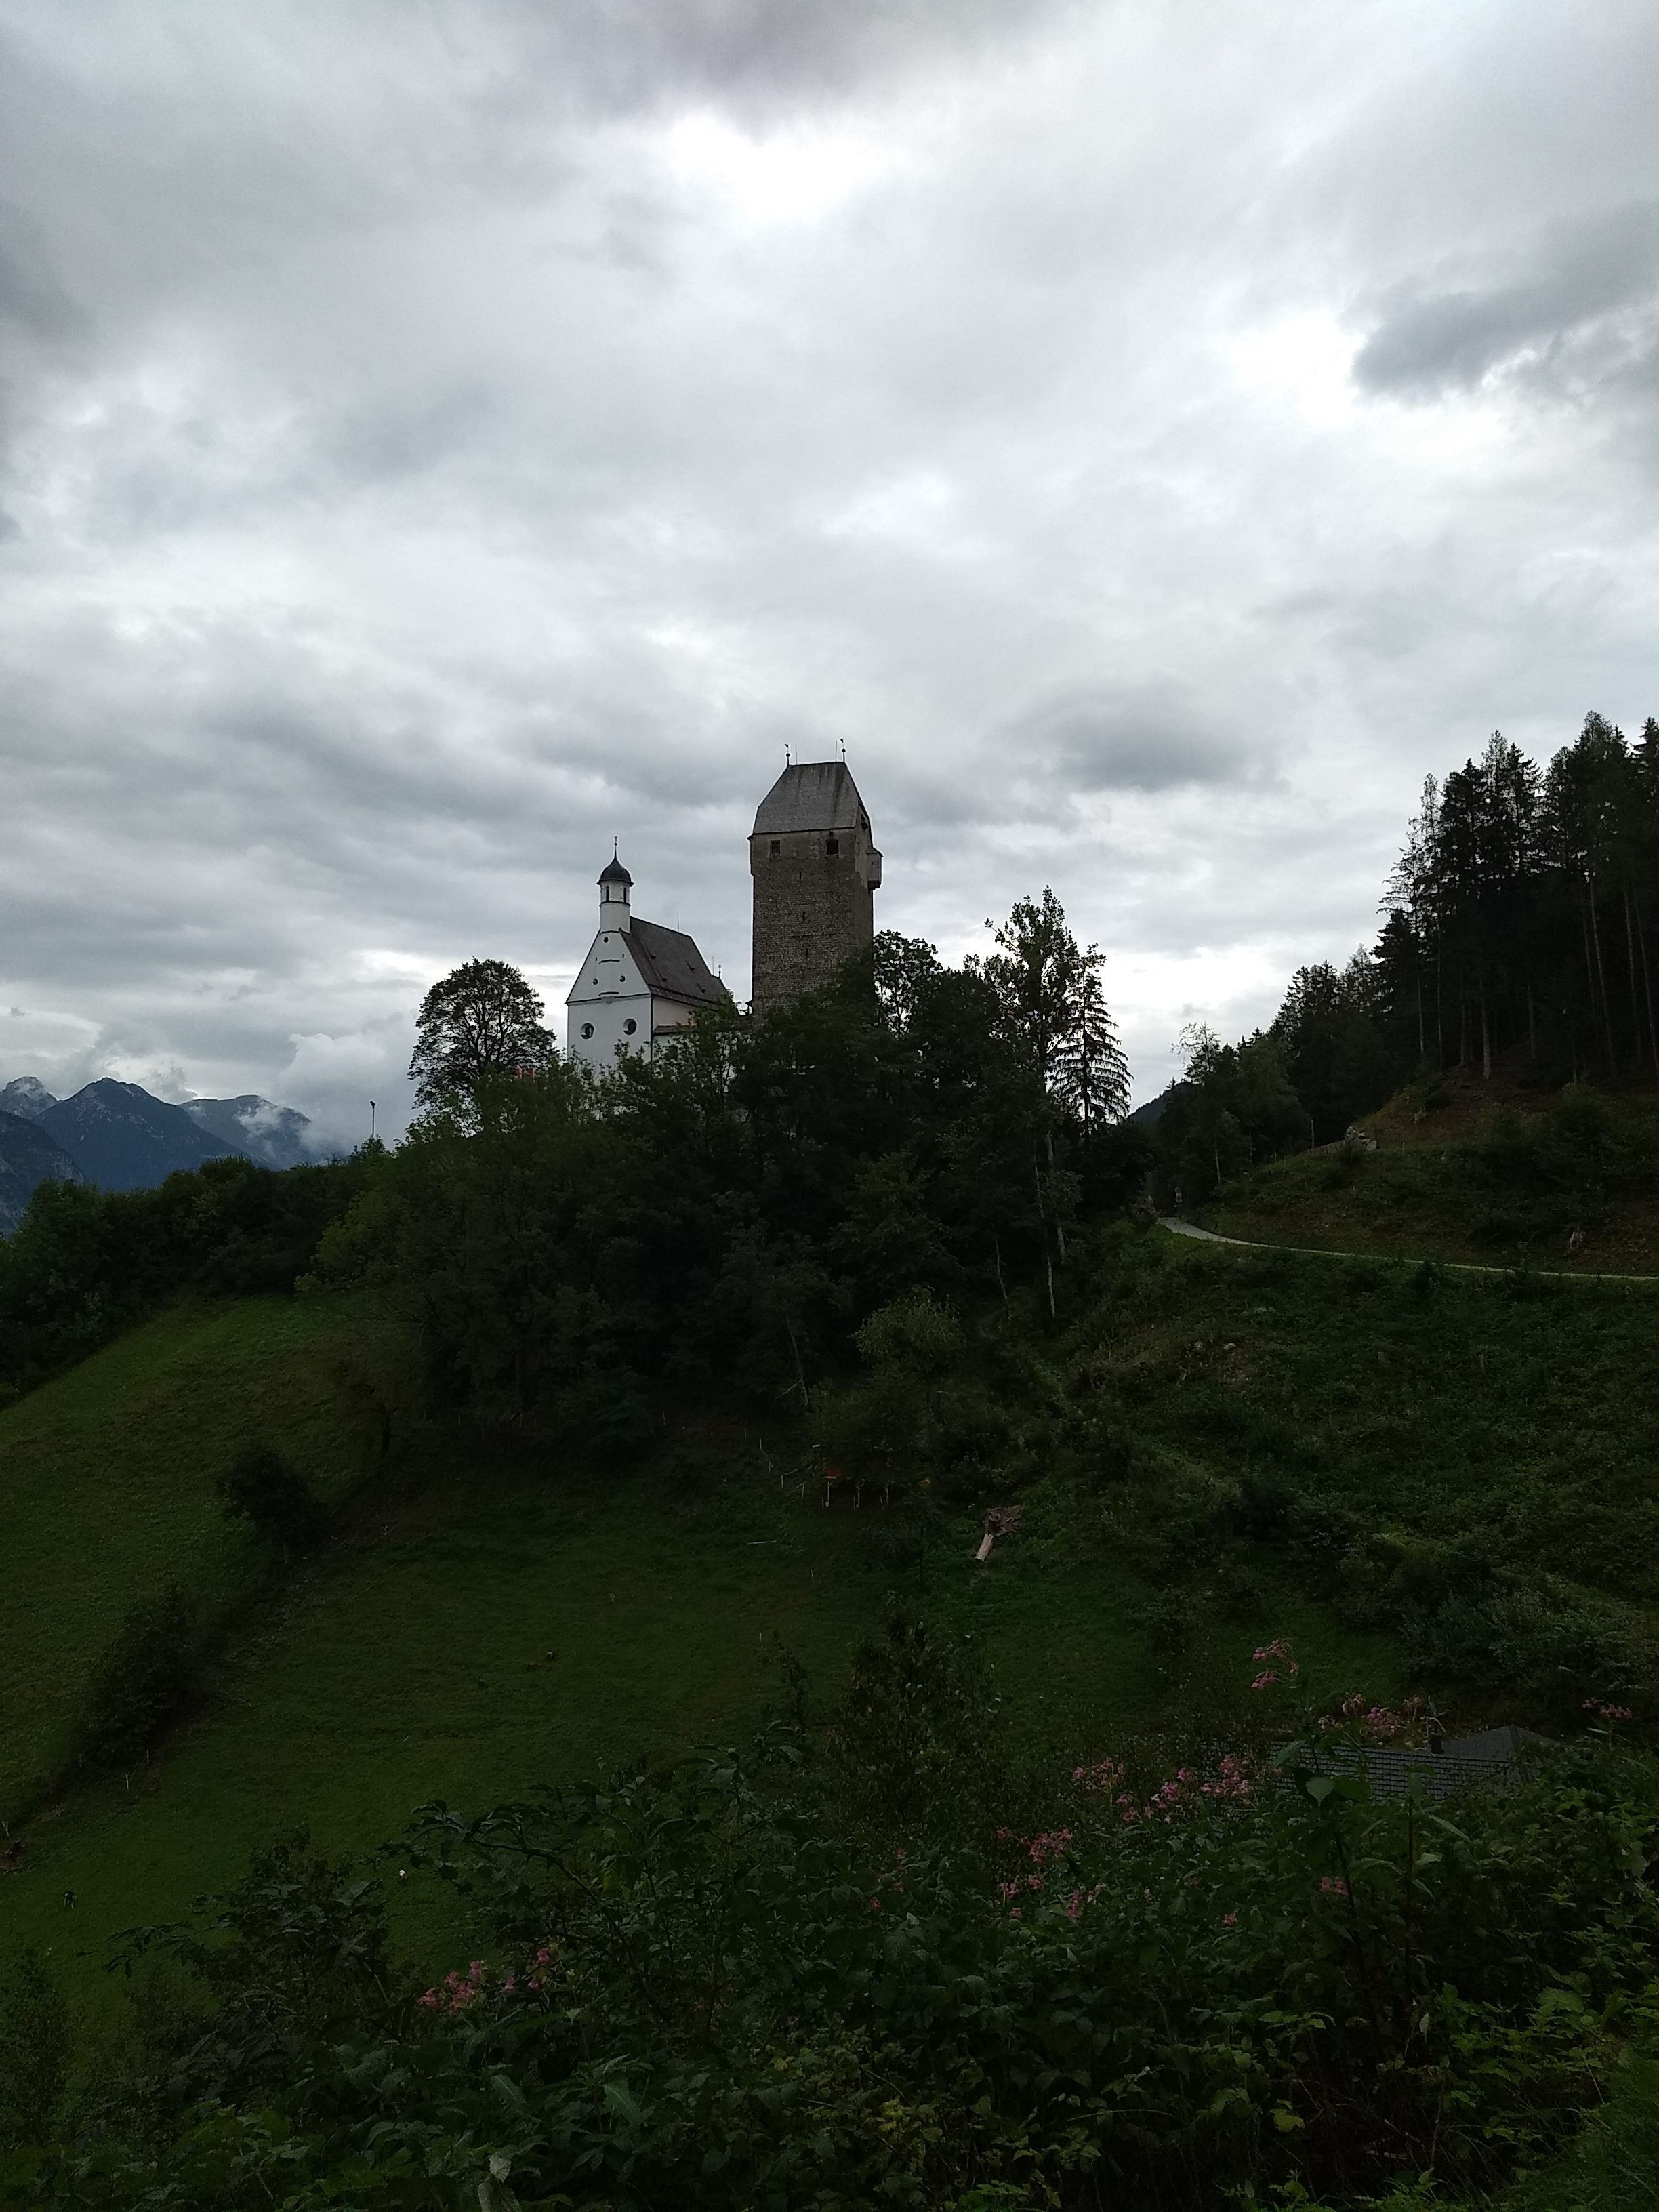 a keep and church atop a hill with cloudy sky in the background